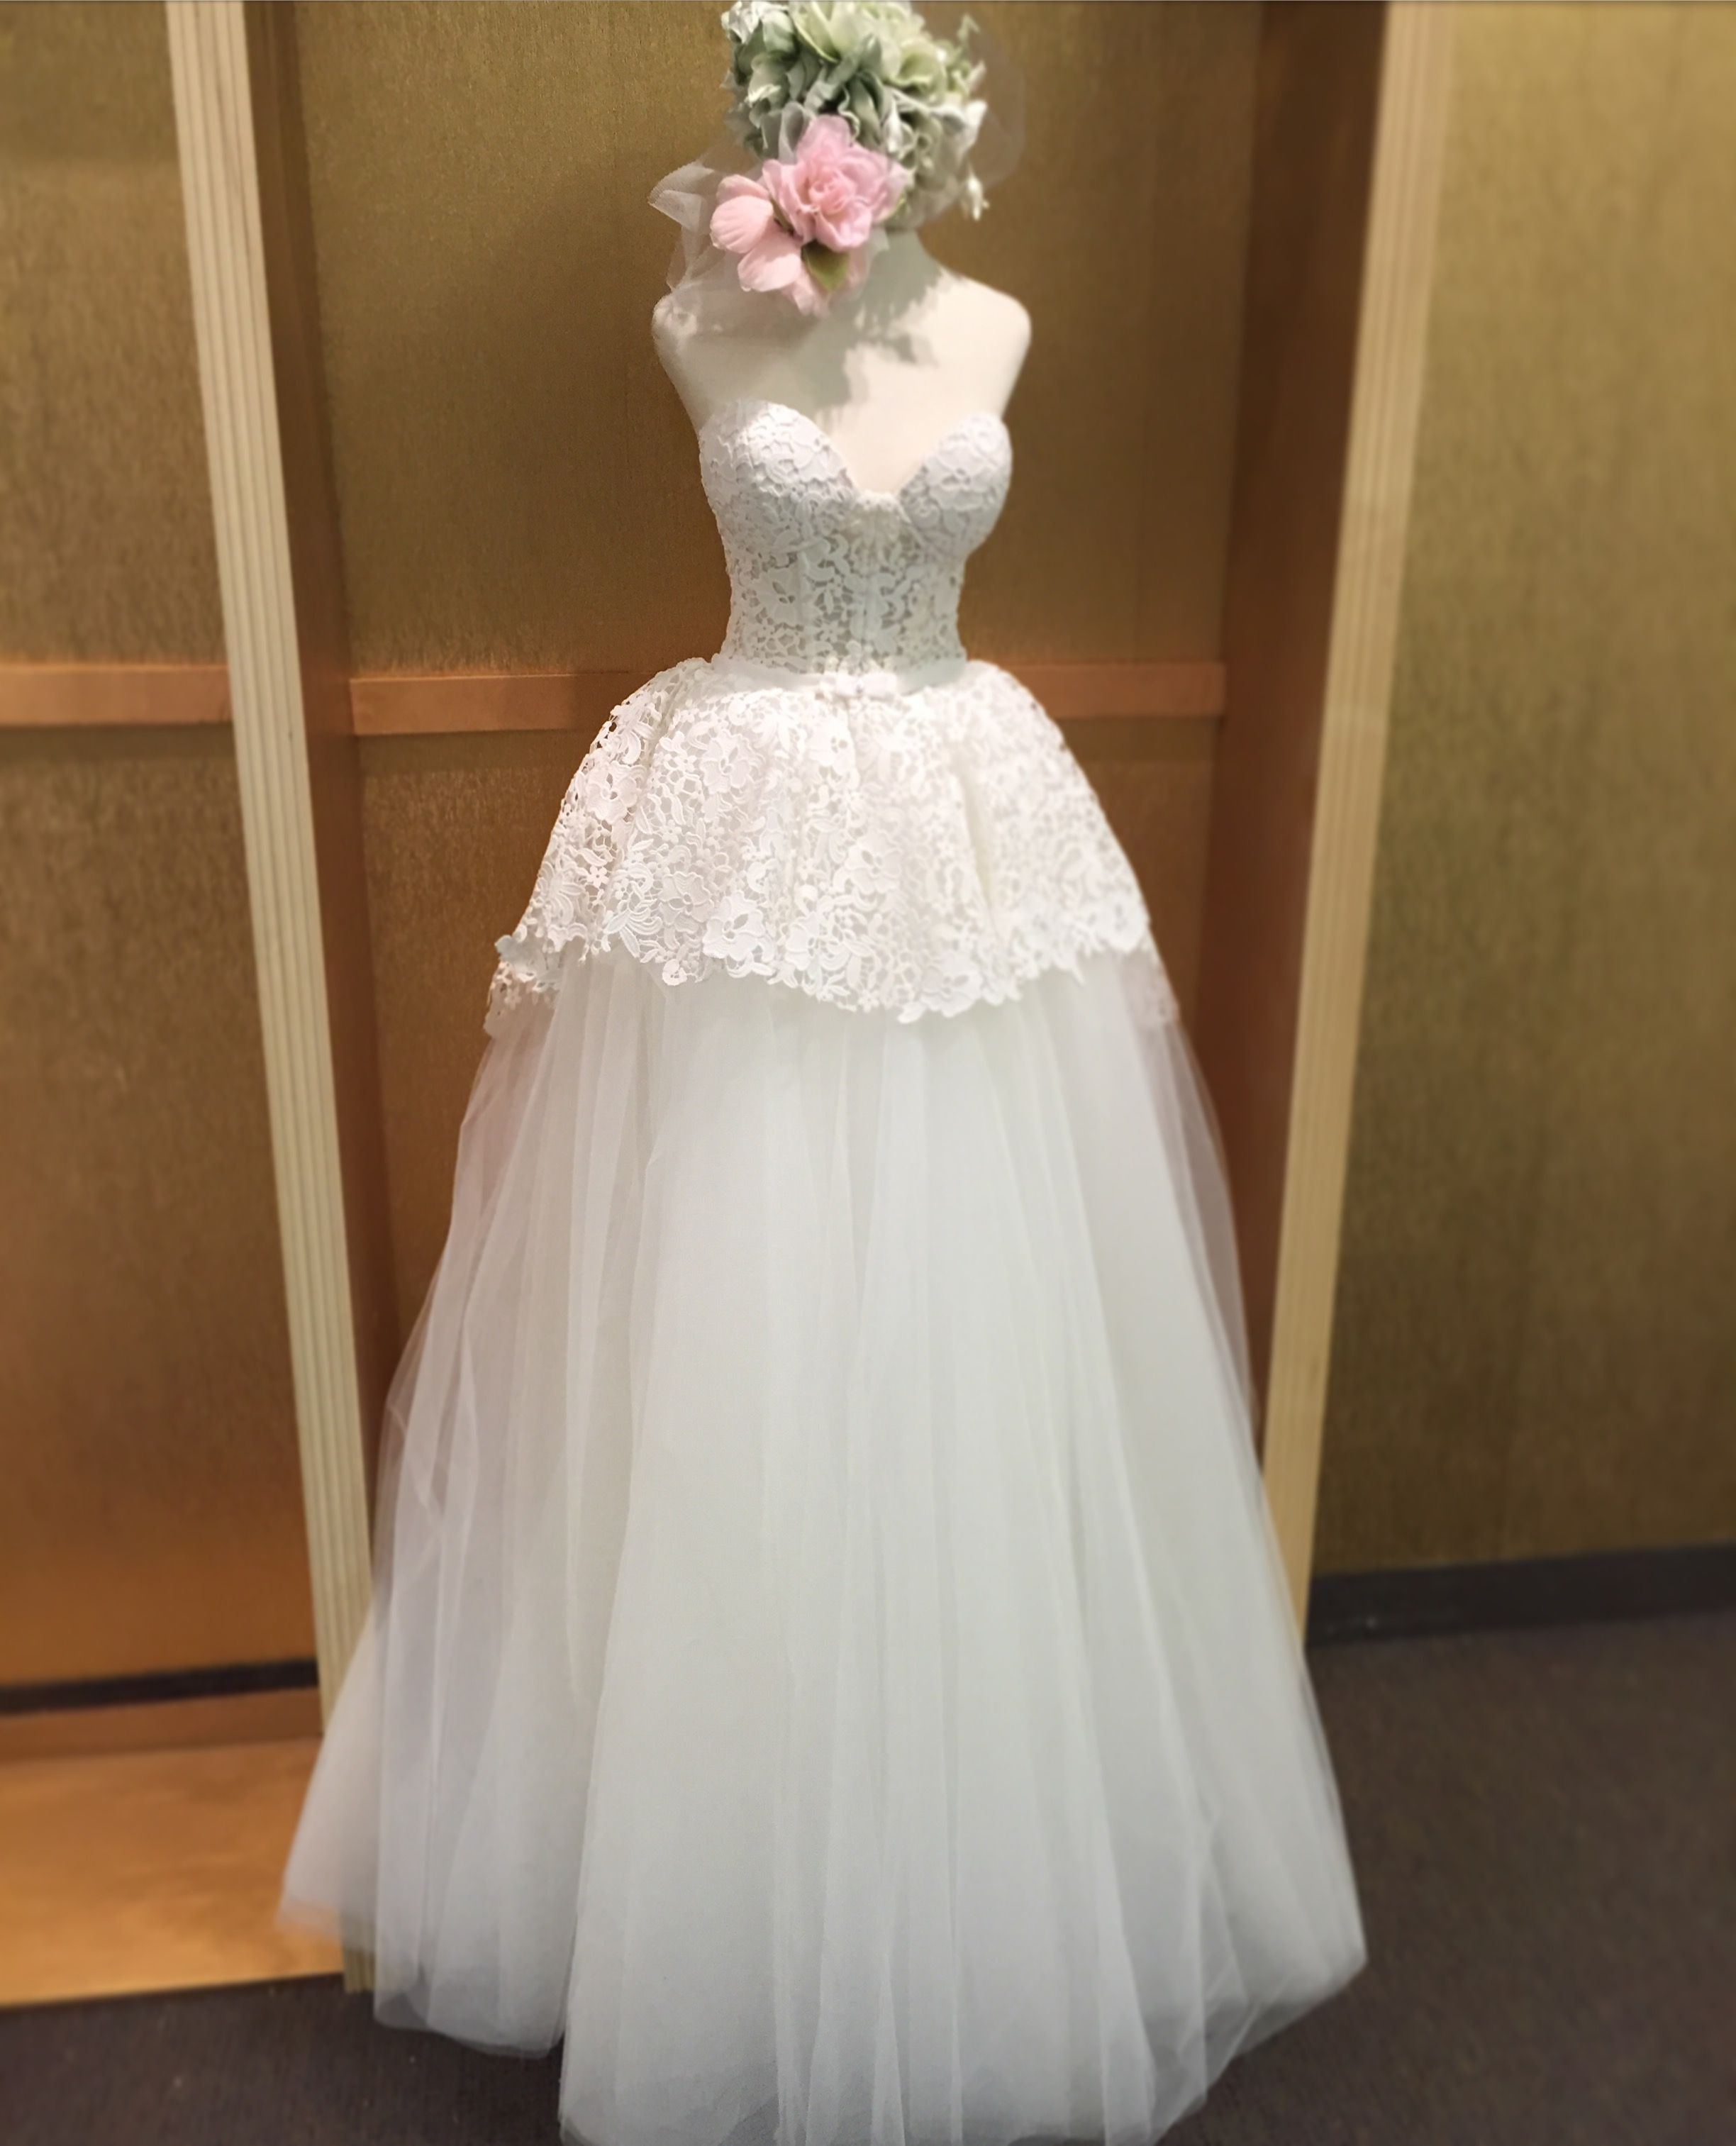 New Orabella Dresses! Call To Schedule Your Appointment